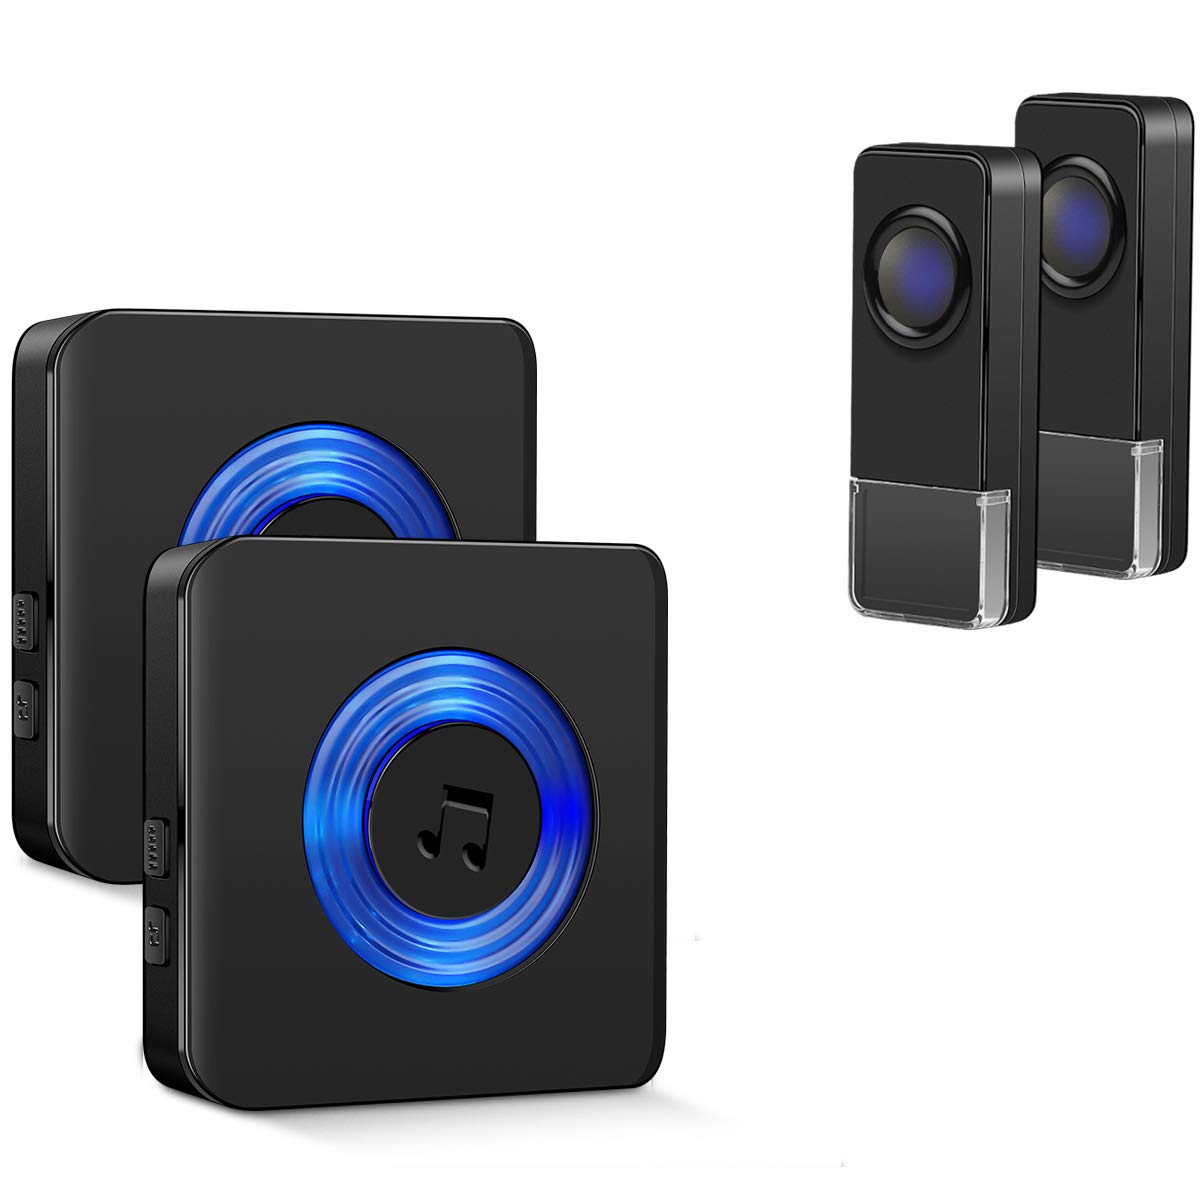 Wireless Doorbell Kit for Home Coolqiya Door Bell Chime with 2 Waterproof Transmitters and 2 Plug-in Receivers